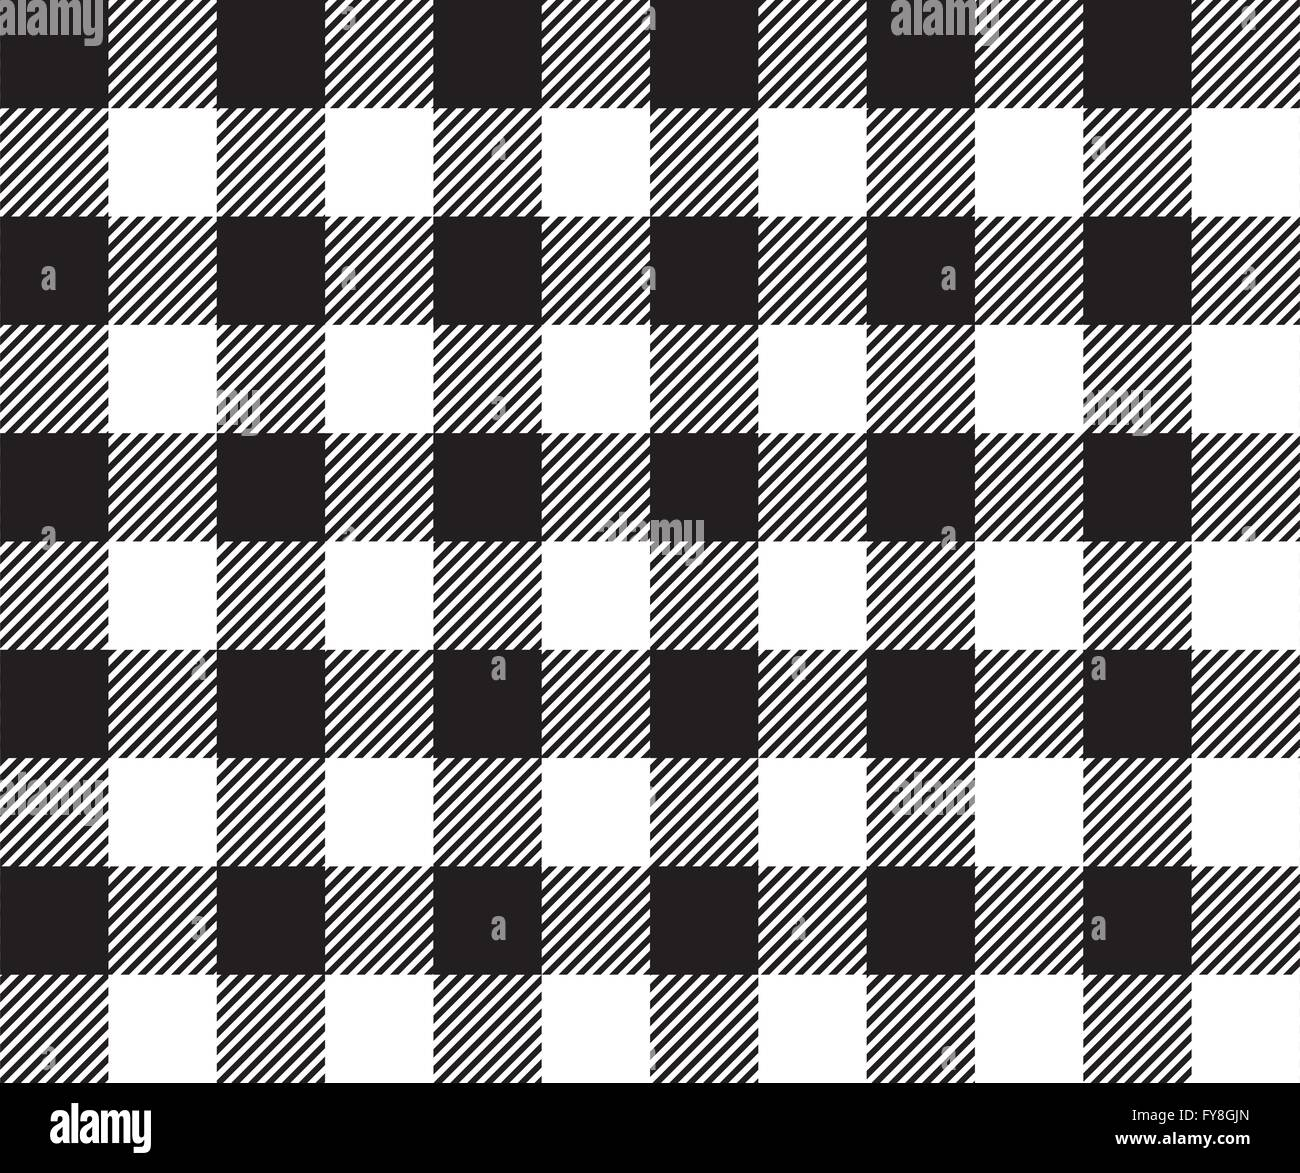 Black Tablecloth Background Seamless Pattern. Vector Illustration Of  Traditional Gingham Dining Cloth With Fabric Texture. Check